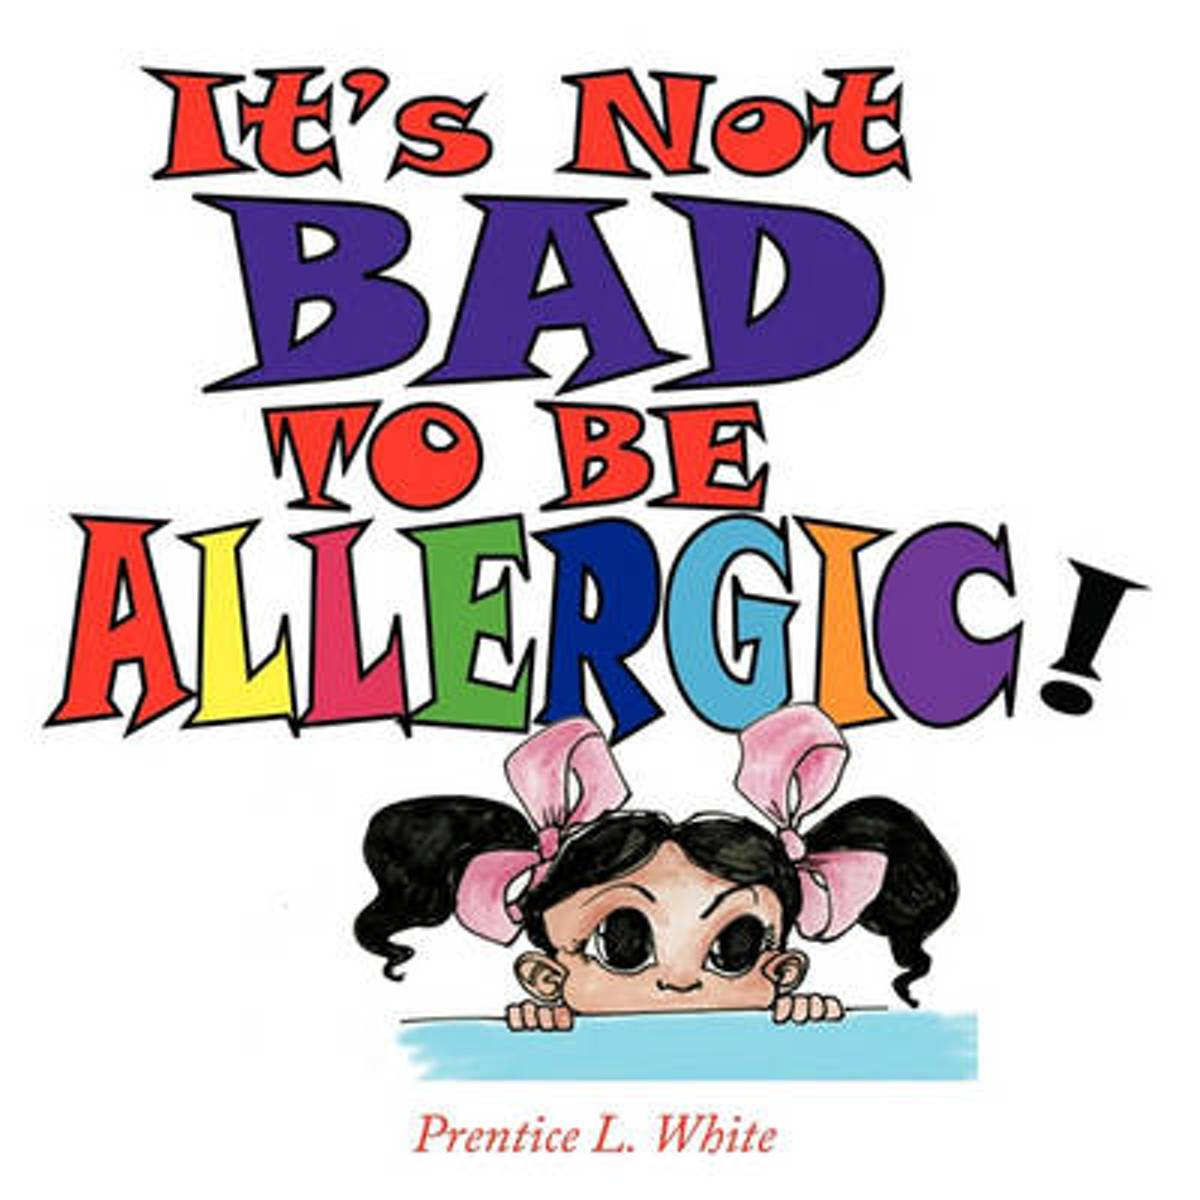 It's Not Bad to Be Allergic!